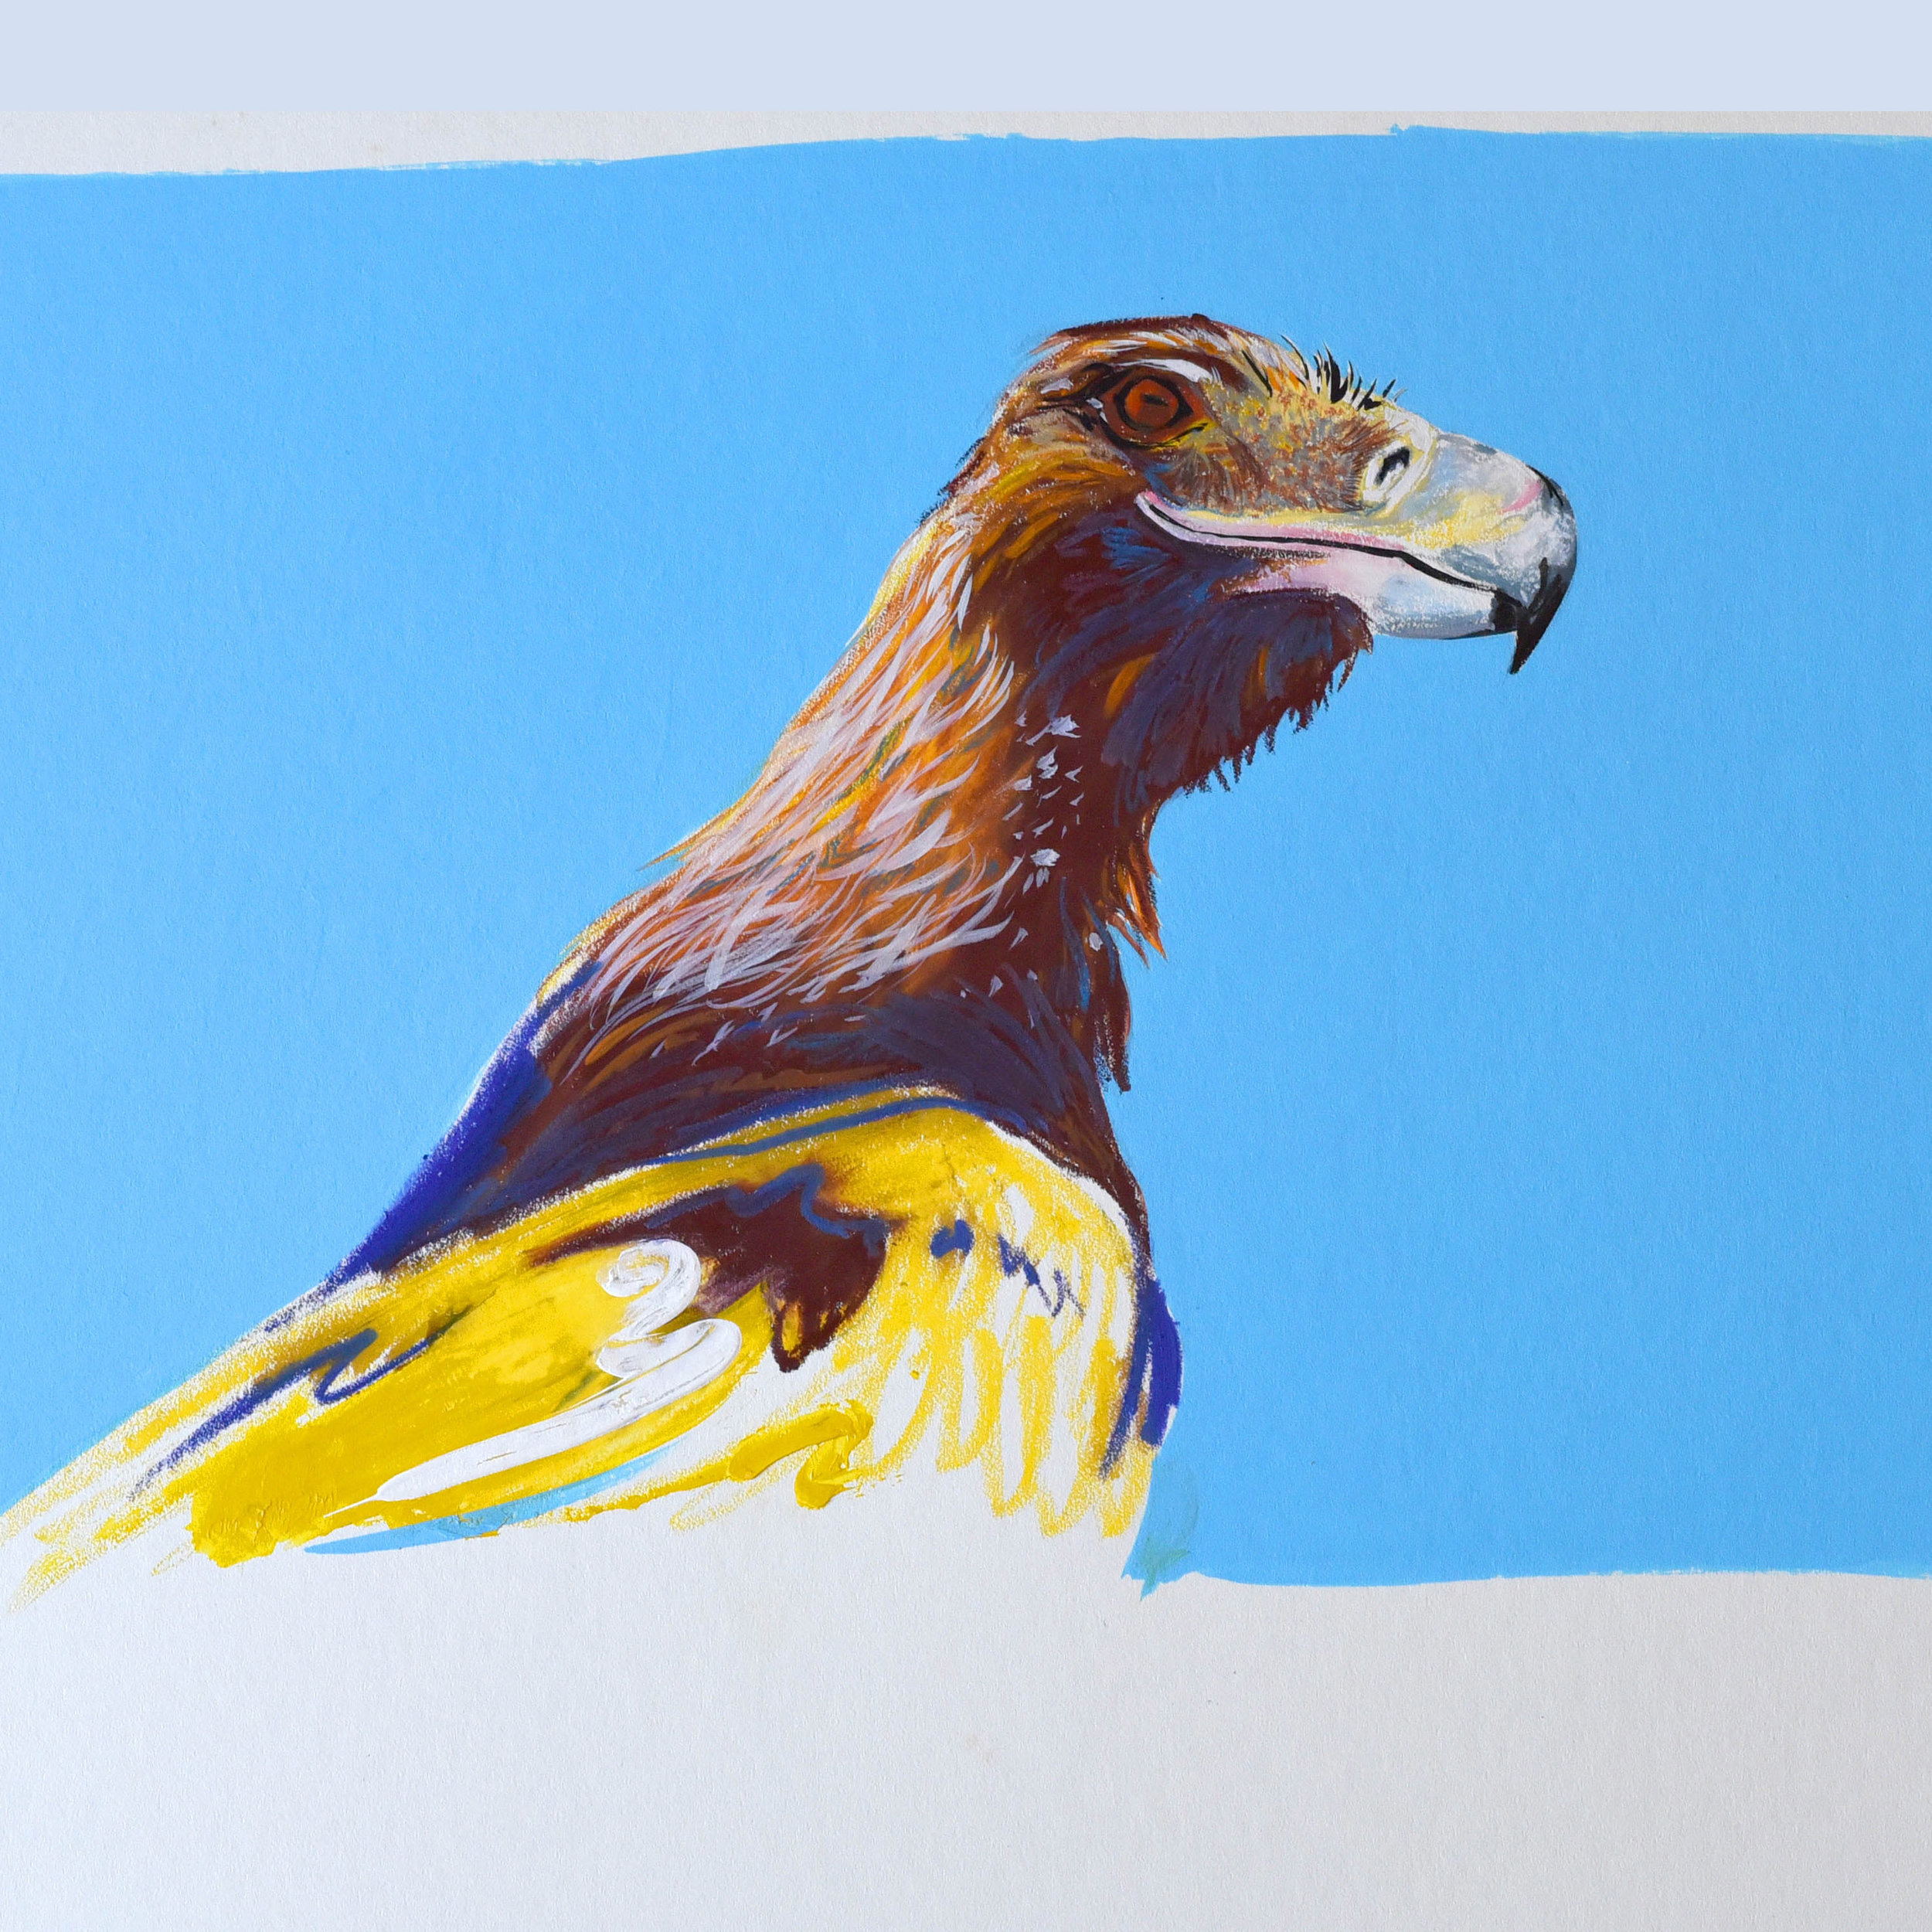 Painting of an eagle using wax pencil and acrylic on art board